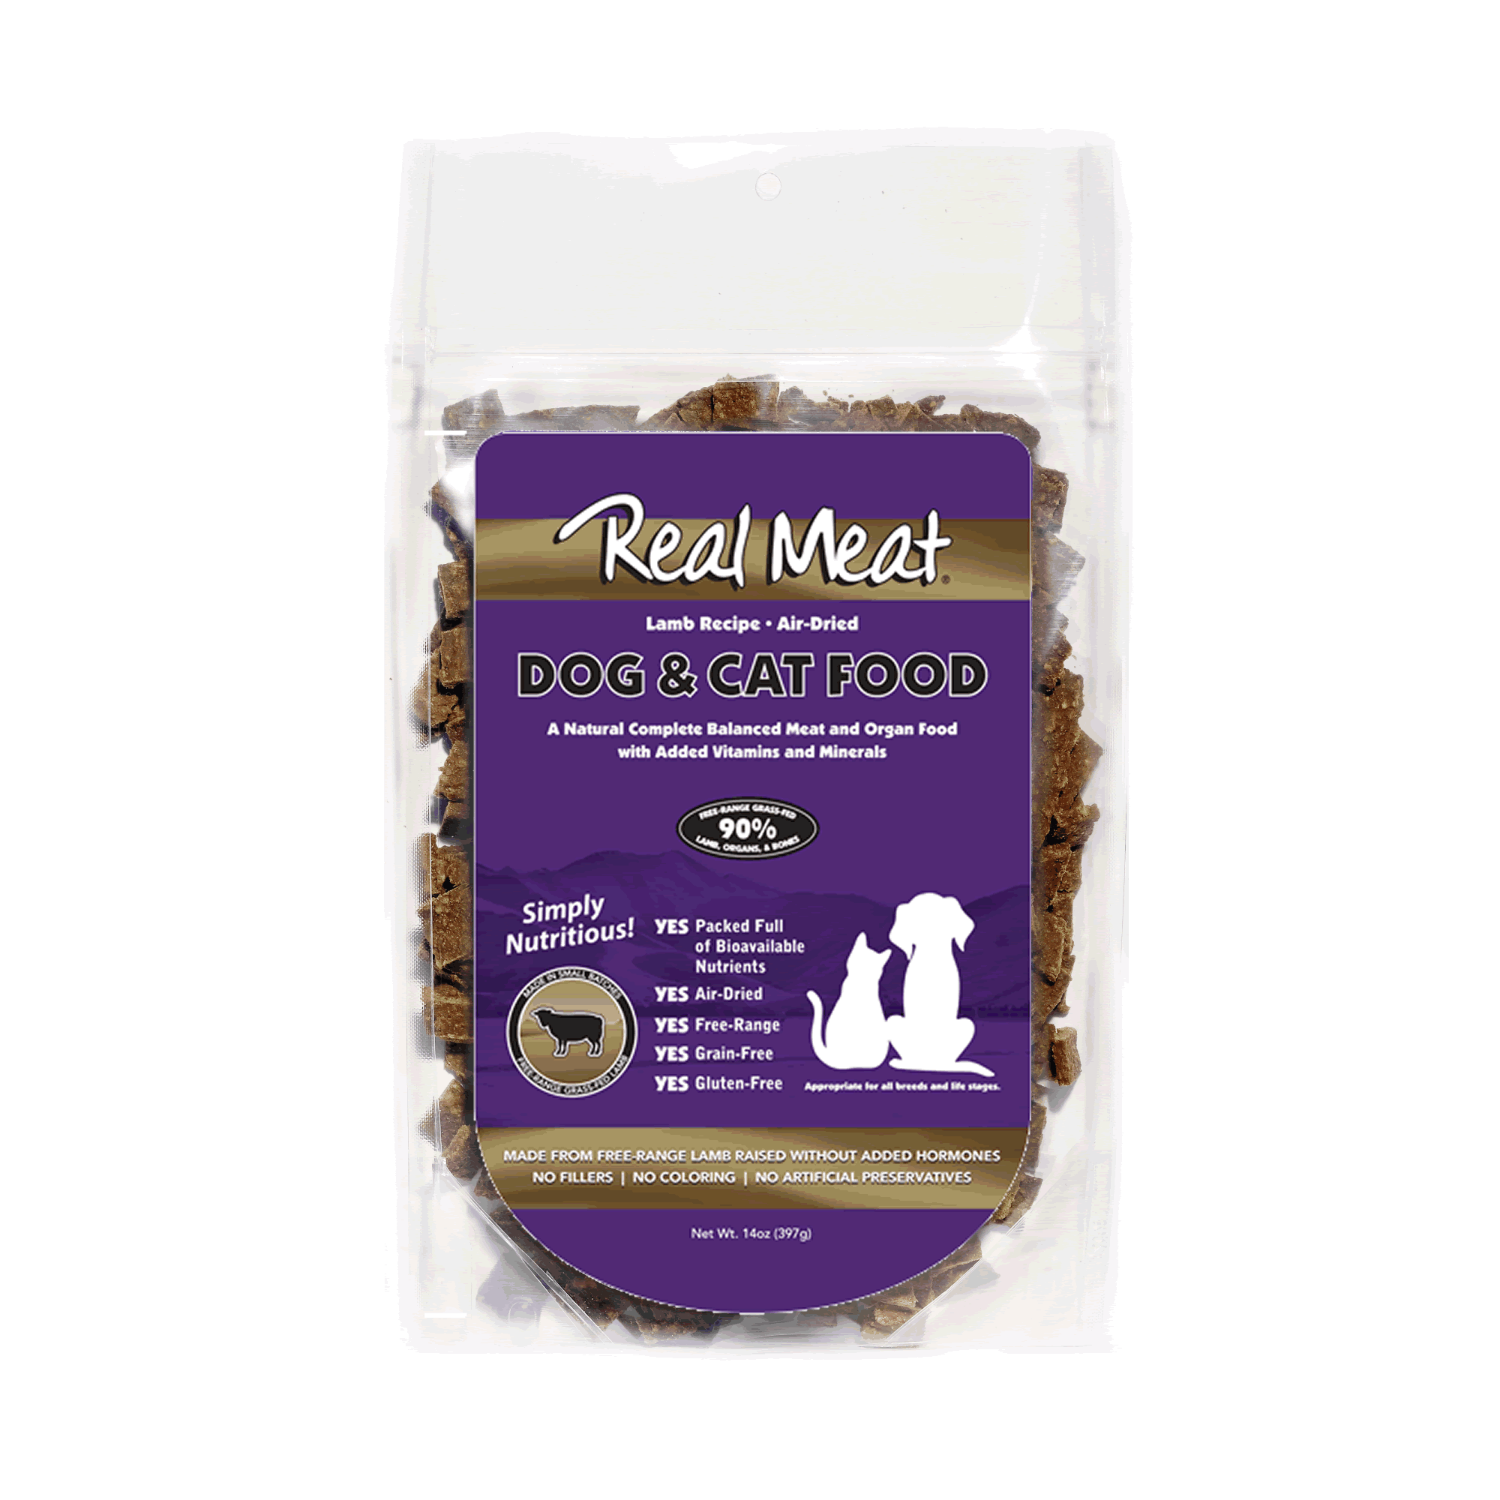 Real Meat Dog and Cat Food - Lamb